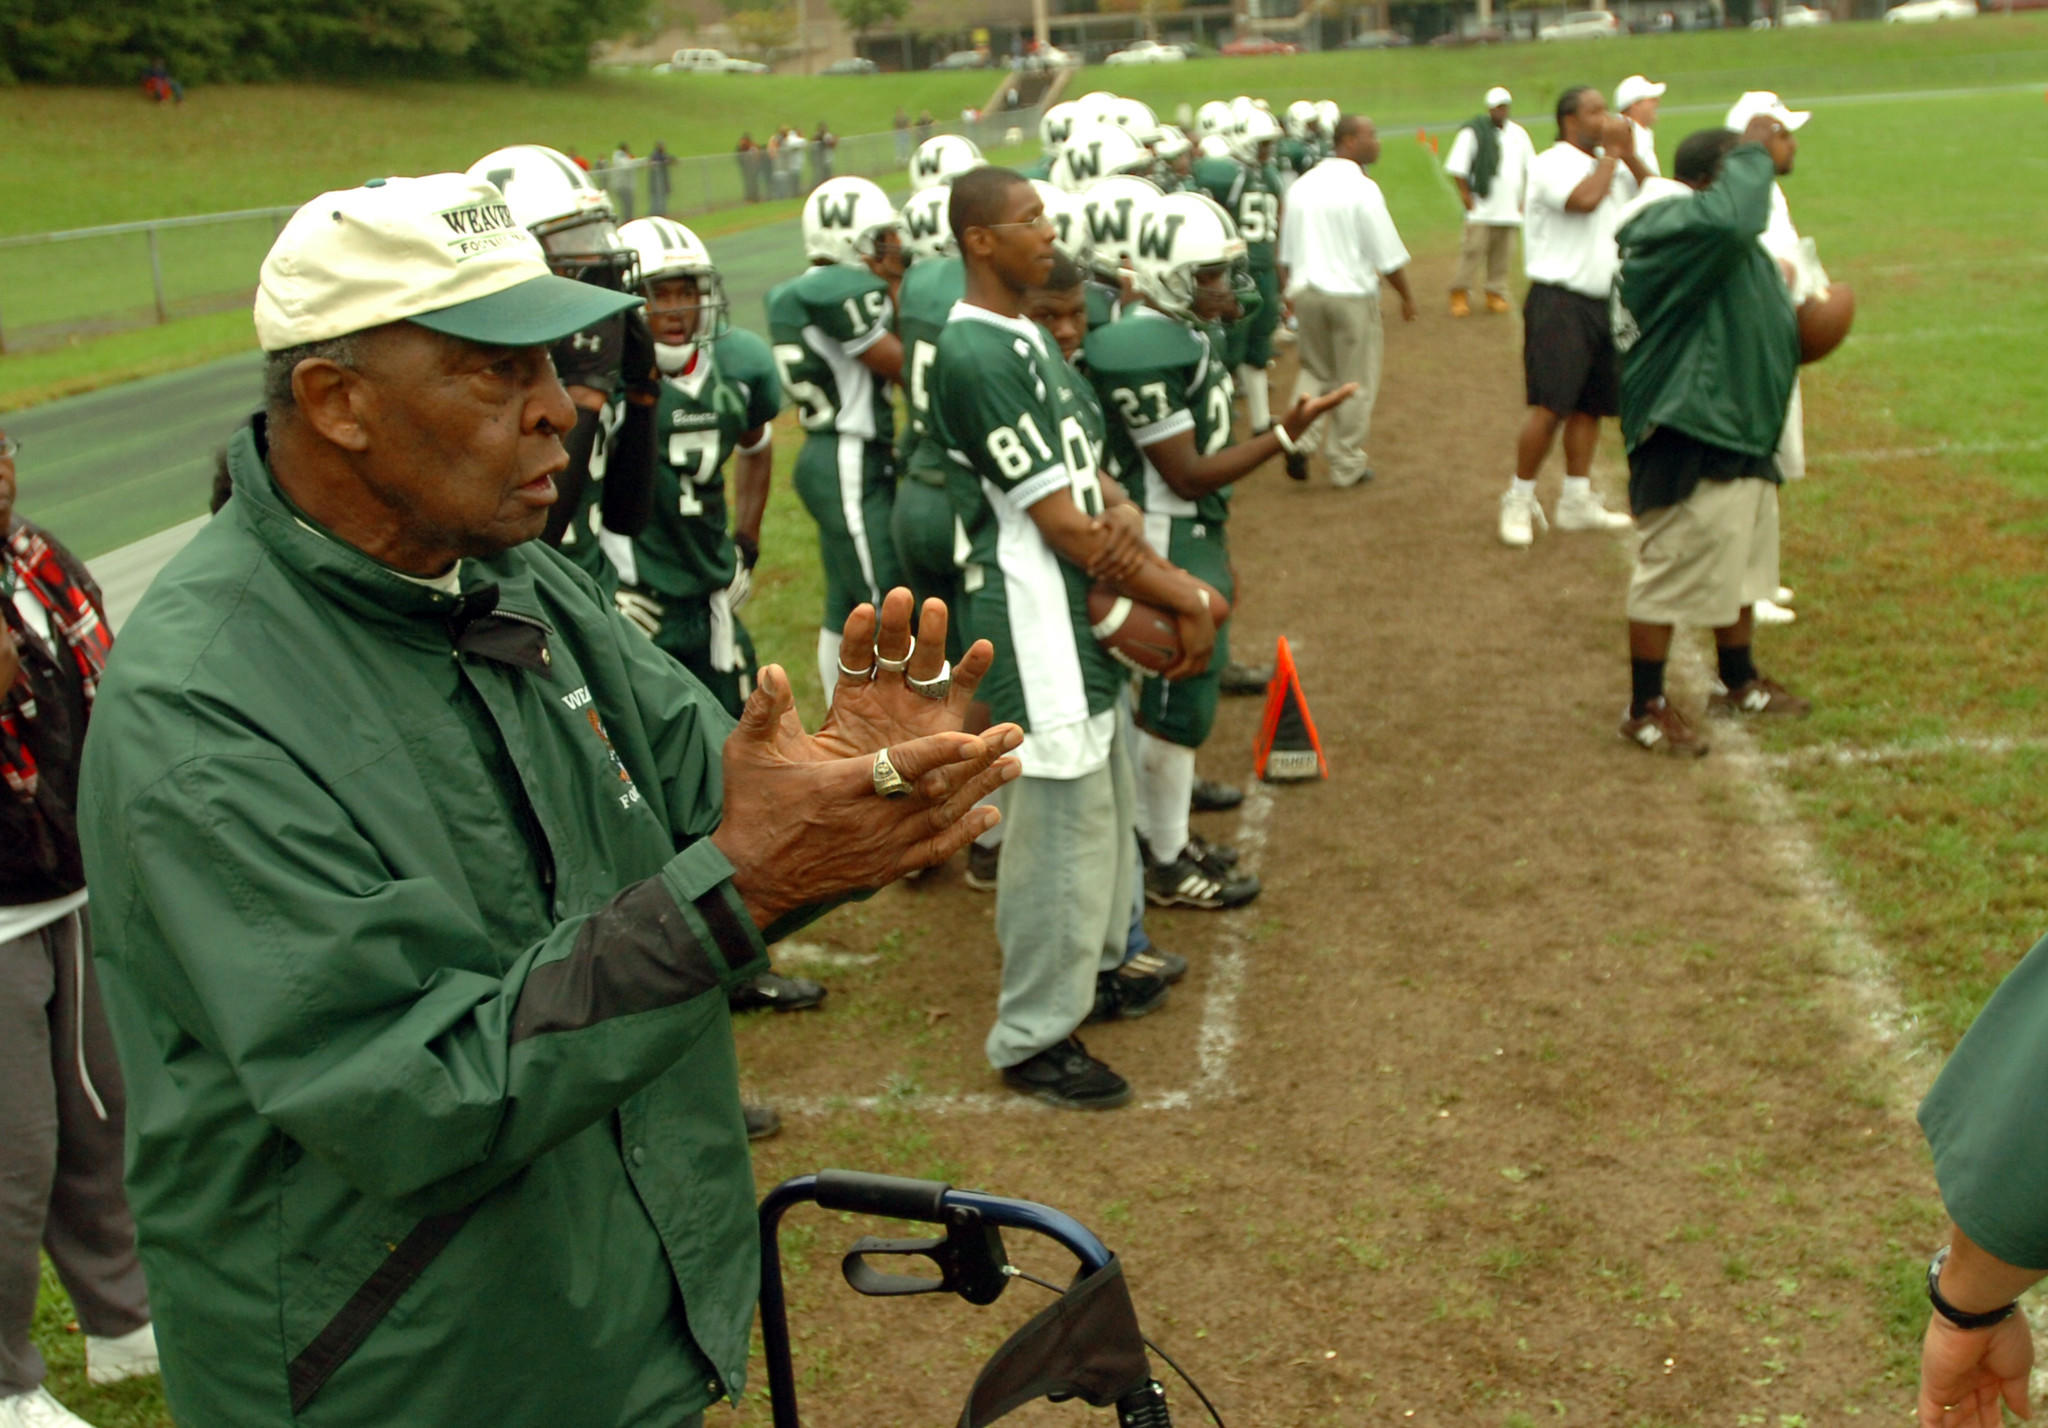 Doc Hurley cheers on the Weaver High School football team at a home game against Bulkeley on Sept. 23, 2006. Hurley, a former Weaver teacher and coach, served as honorary Weaver football coach for the day.